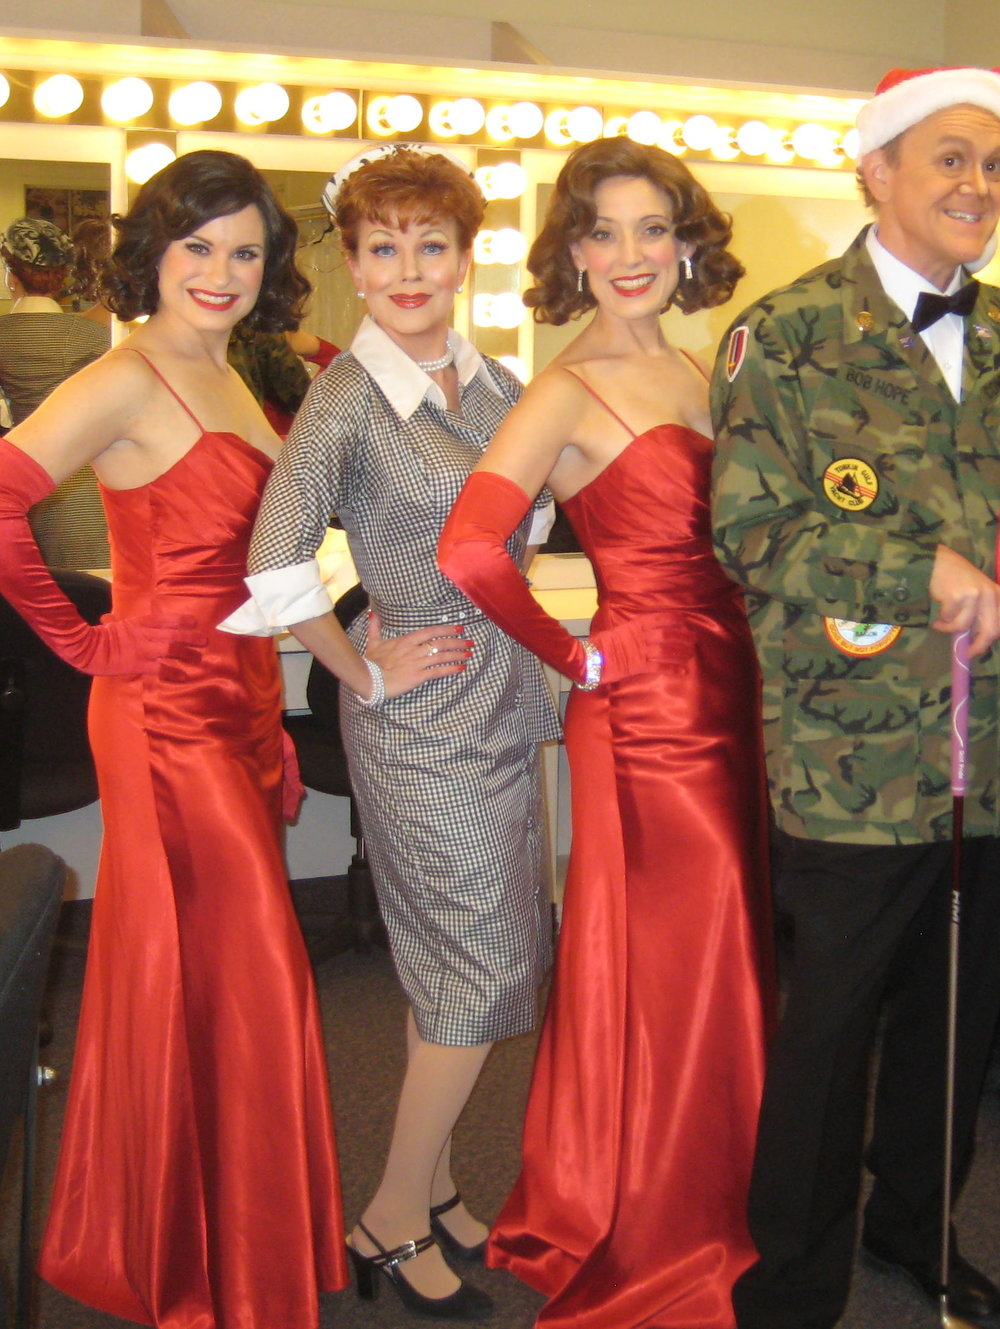 The McGuire Sisters, Bob, and Lucy! Holiday show at Turning Point Casino